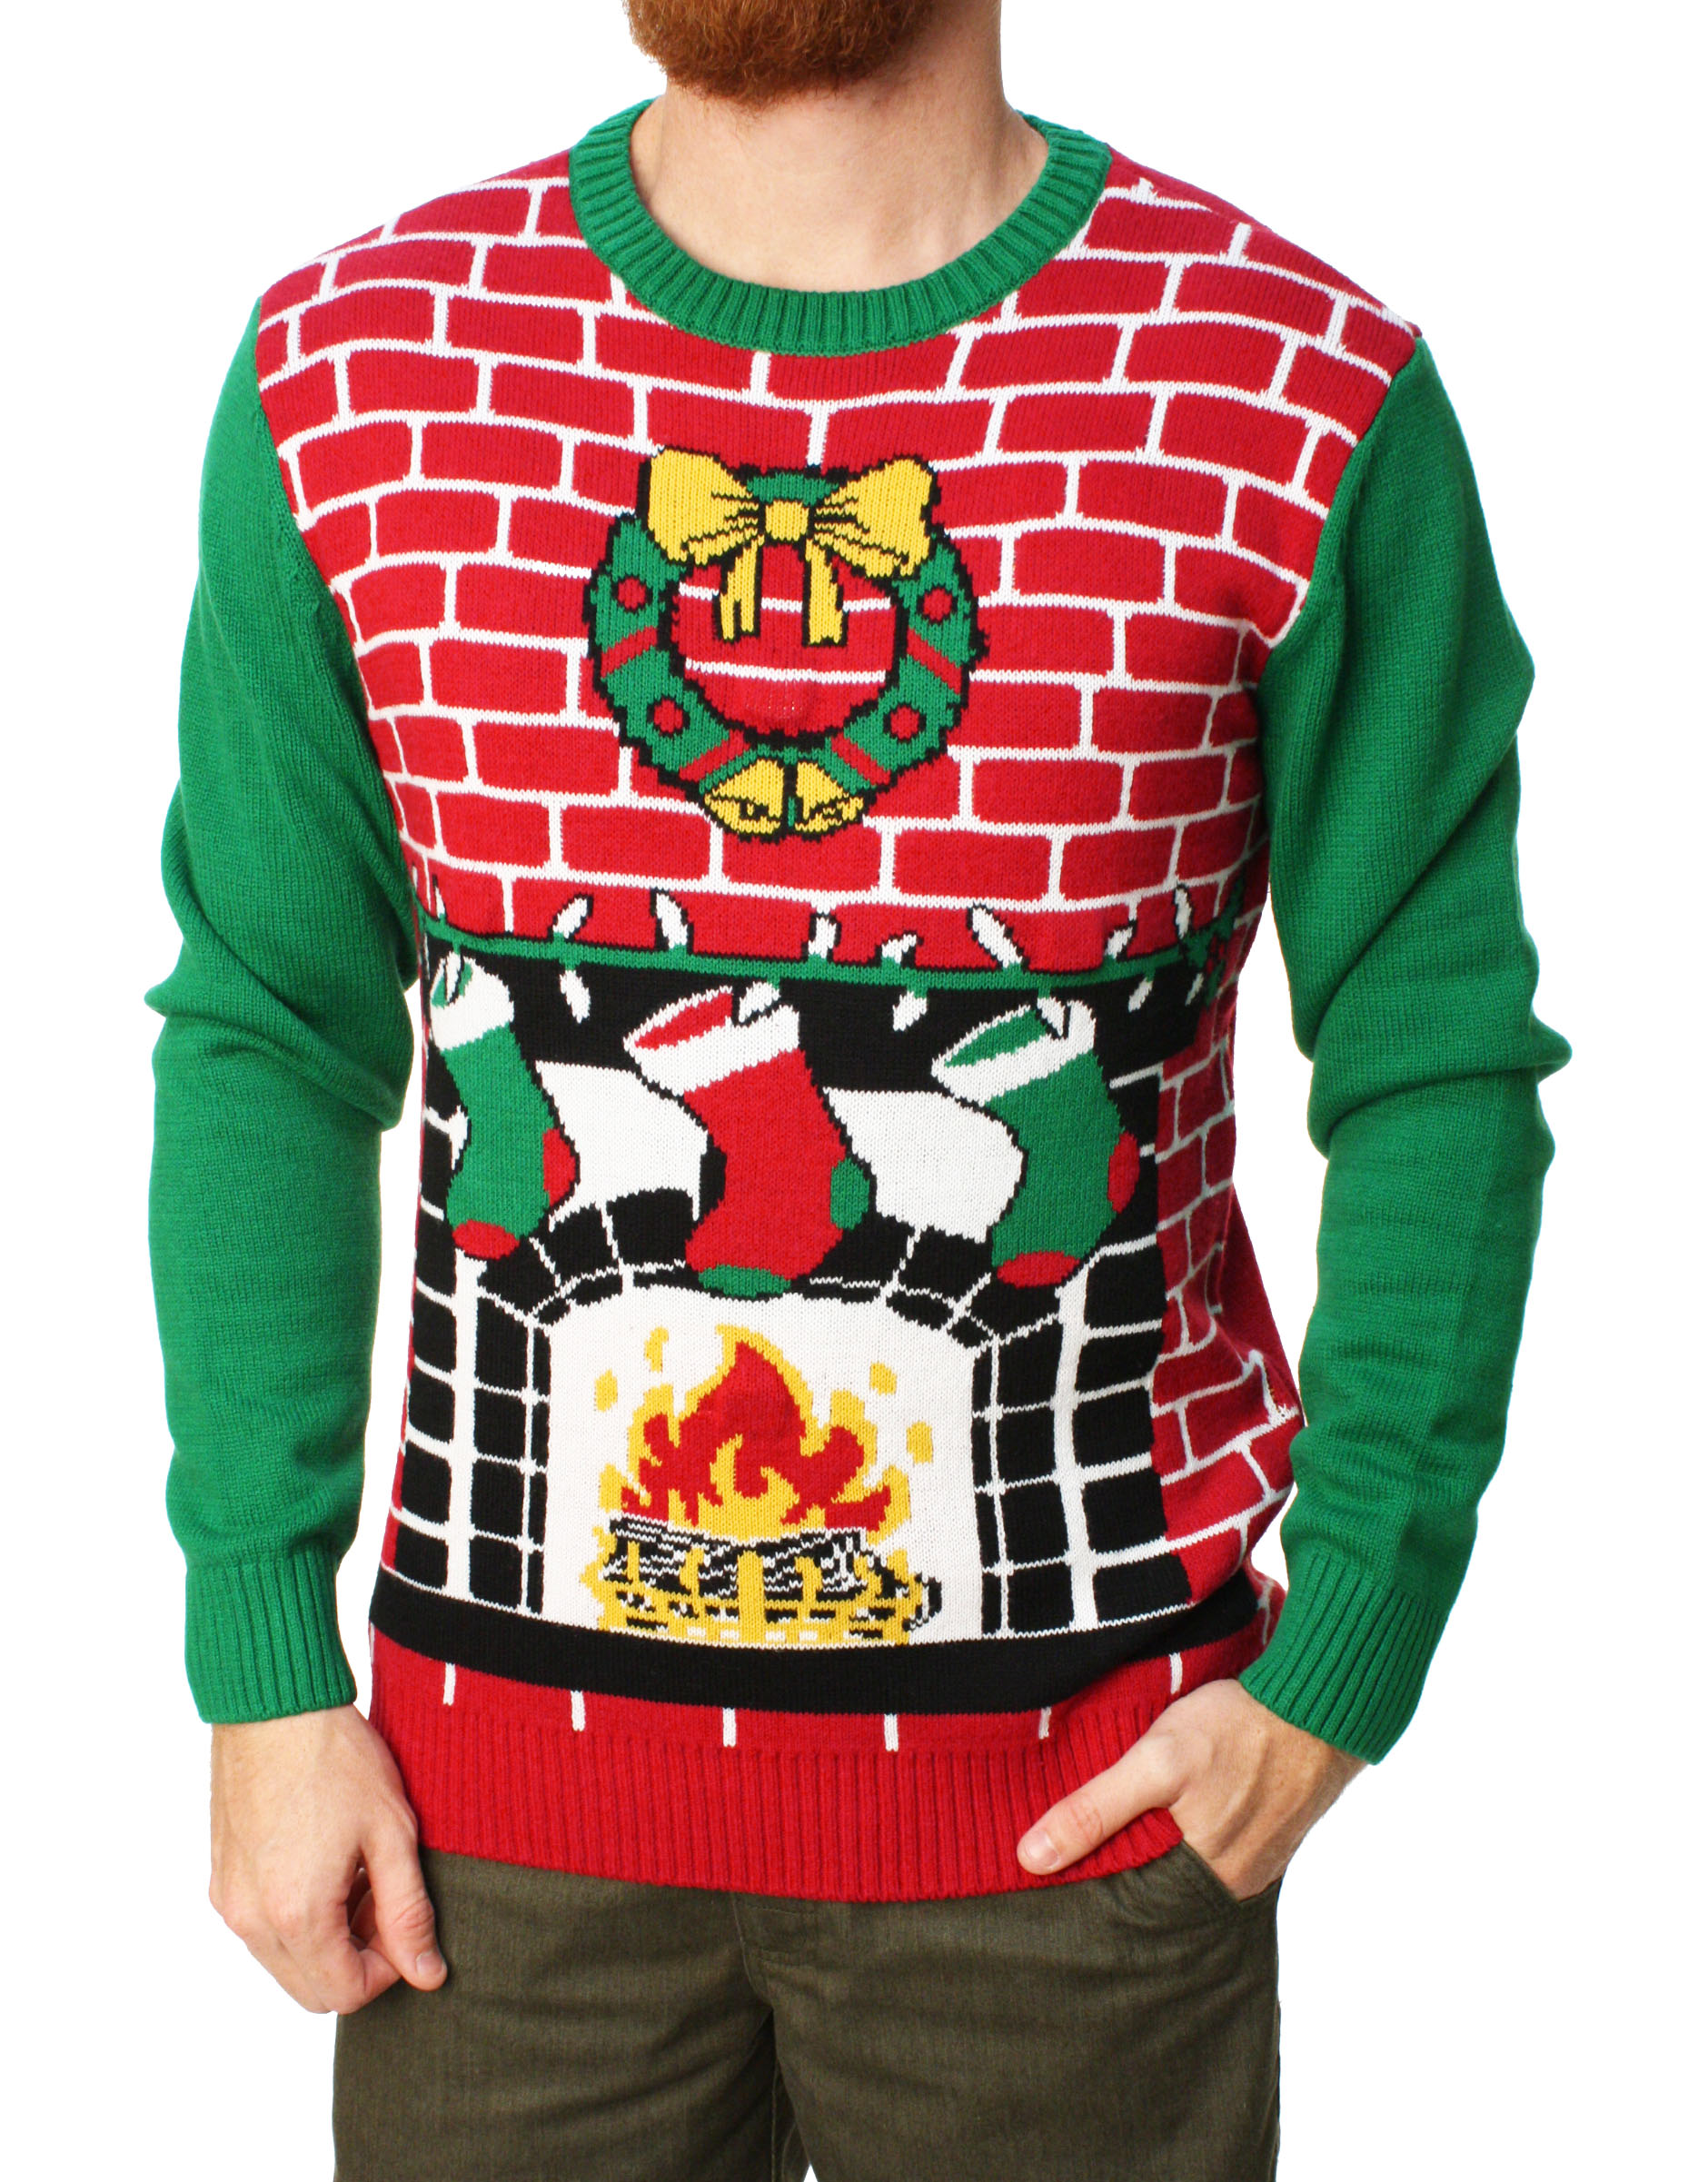 d91bb33bf5c Ugly Christmas Sweater - Ugly Christmas Sweater Men s Fireplace Is Lit  Light Up Sweater-Large - Walmart.com